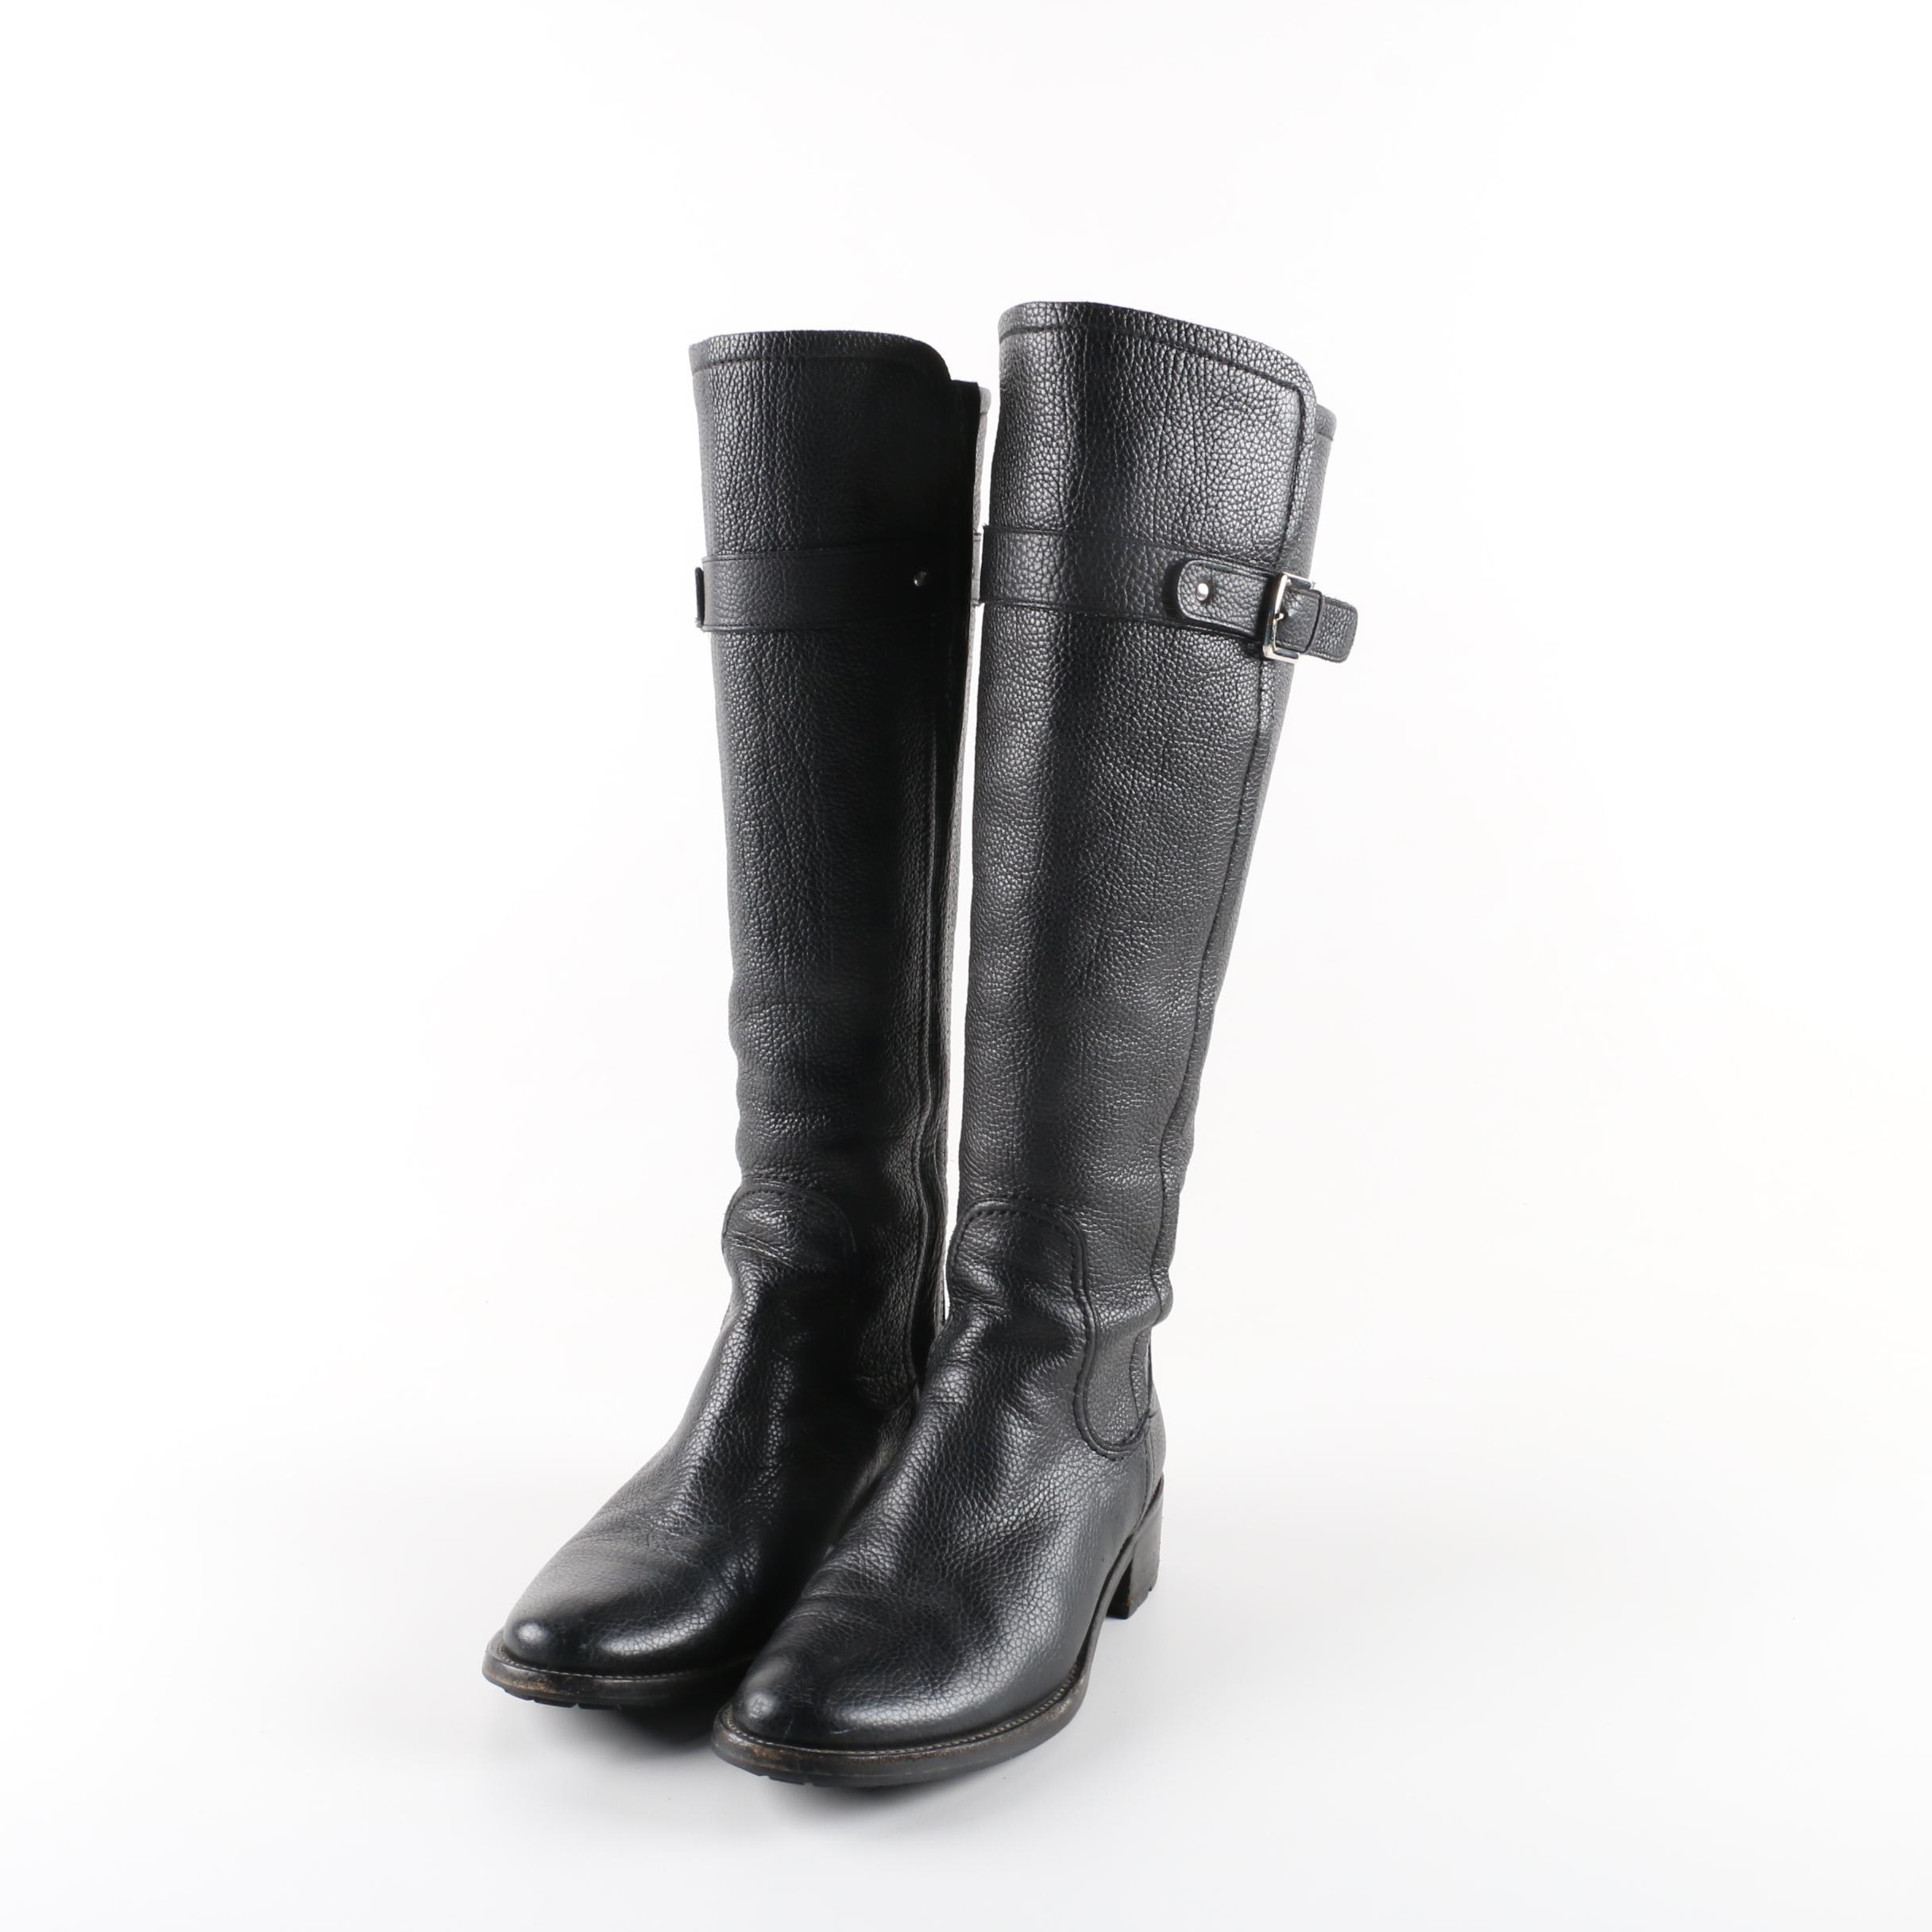 Women's Cole Haan Black Pebbled Leather Knee-High Boots